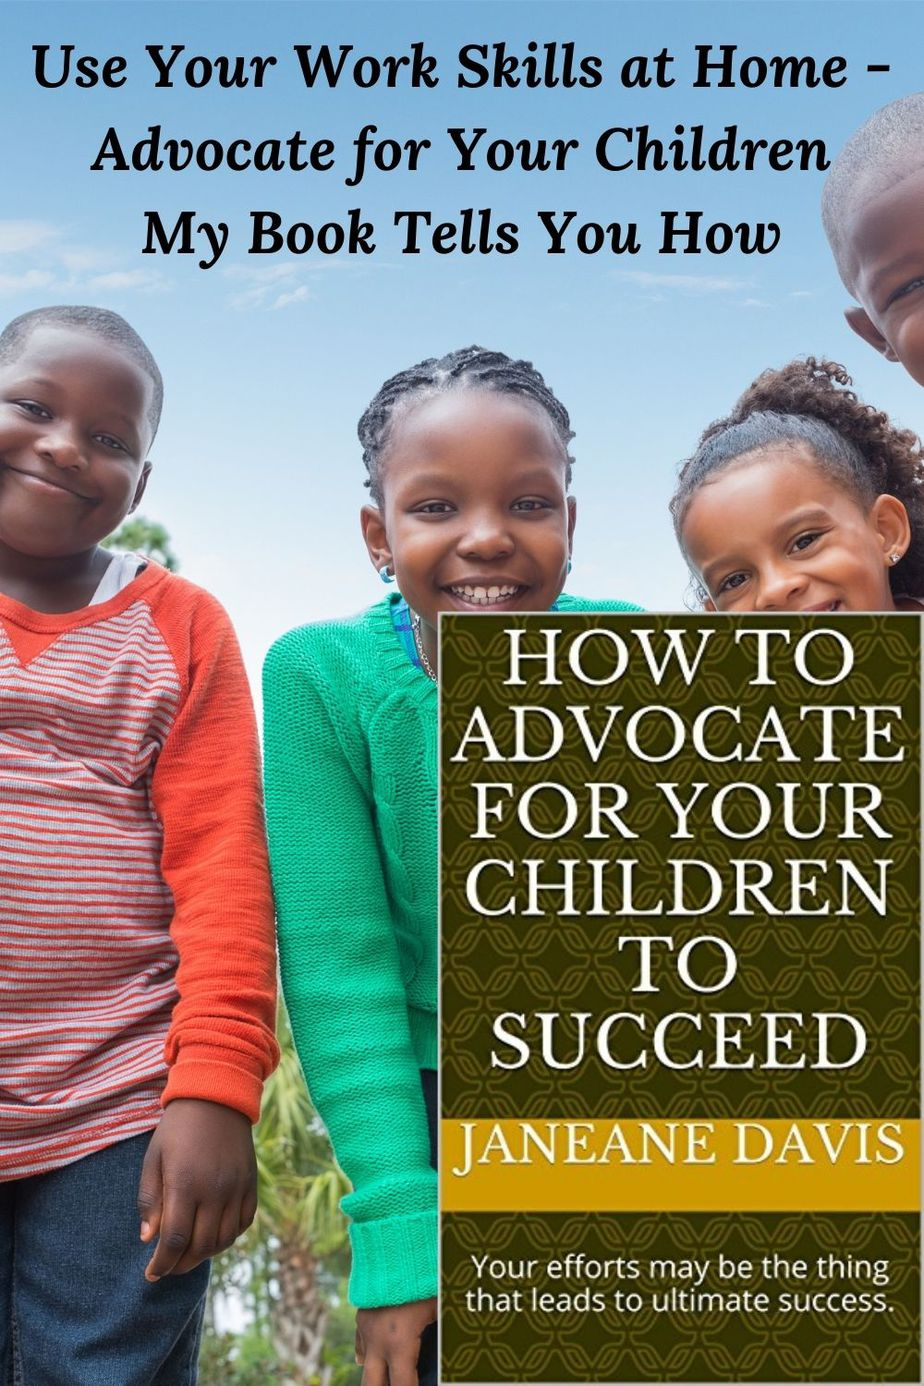 """4 smiling African American children and the words Use Your Work Skills at Home - Advocate for Your Children My Book Tells You How and the cover of the book """"How to Advocate for Your Children to Succeed"""""""